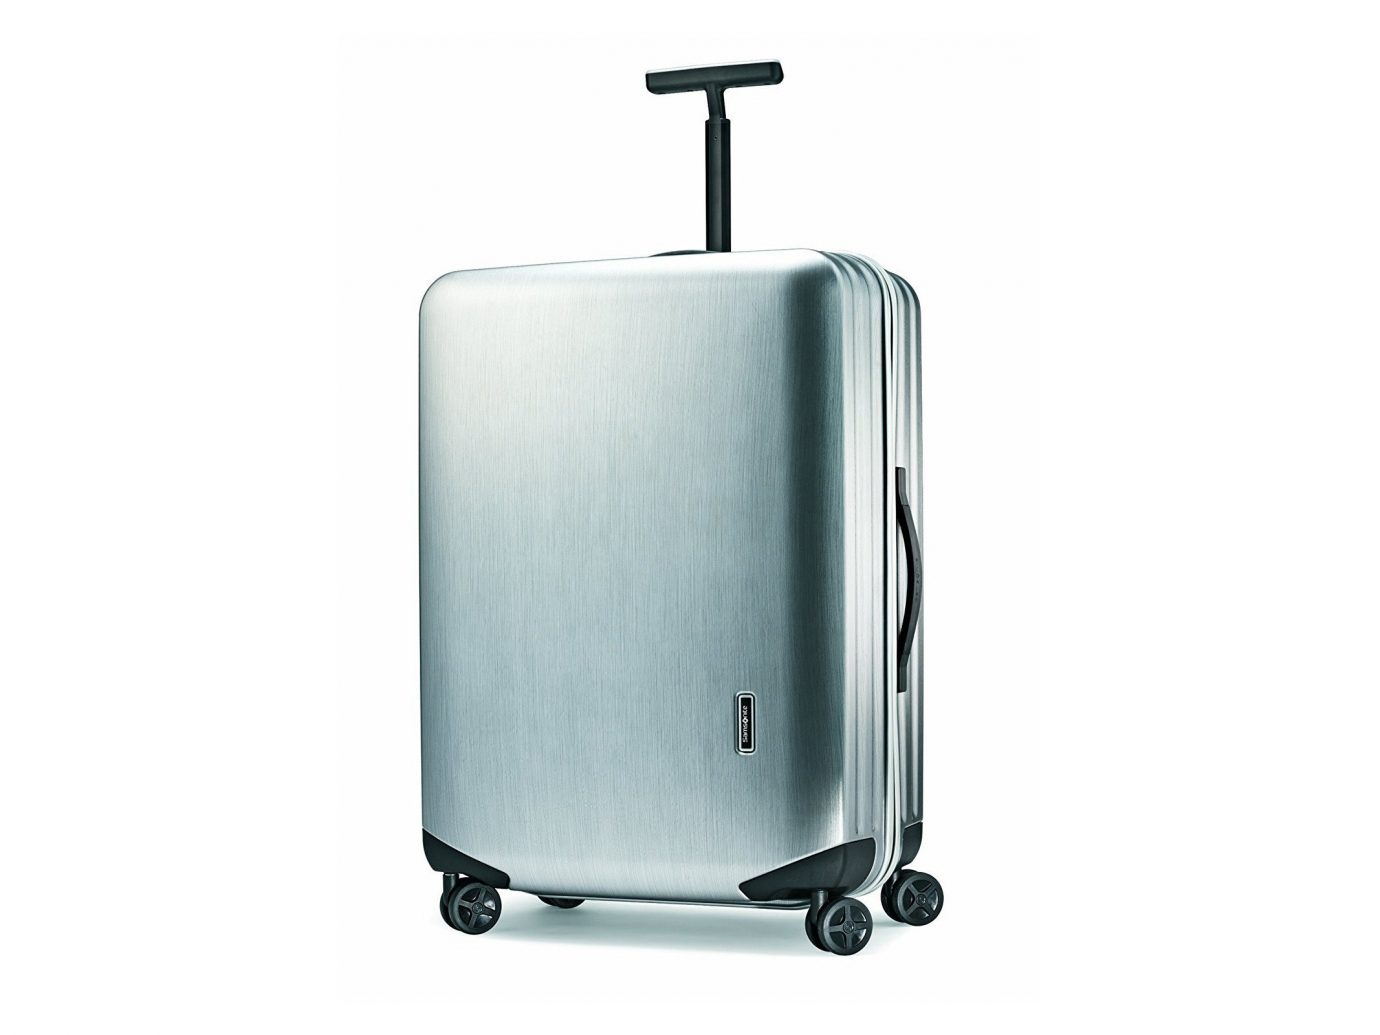 Travel Shop Travel Tech Travel Tips indoor suitcase product product design black case hand luggage luggage & bags